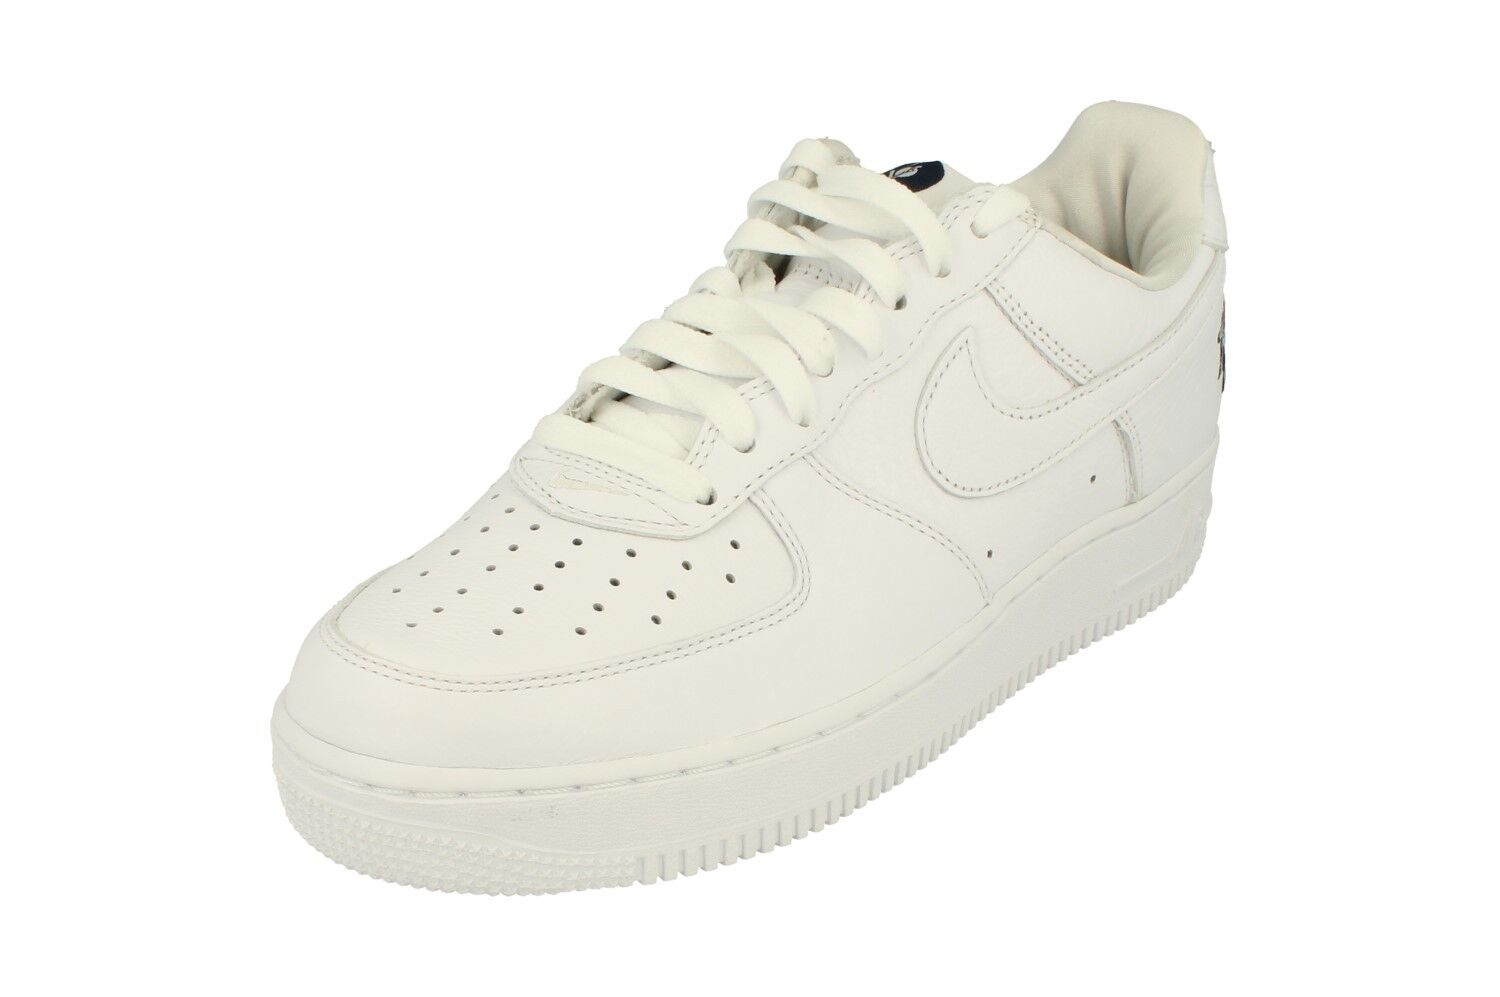 Nike Air Force 1 07 07 07 Rocafella Mens Trainers AO1070 Sneakers shoes 101 1d8fa1